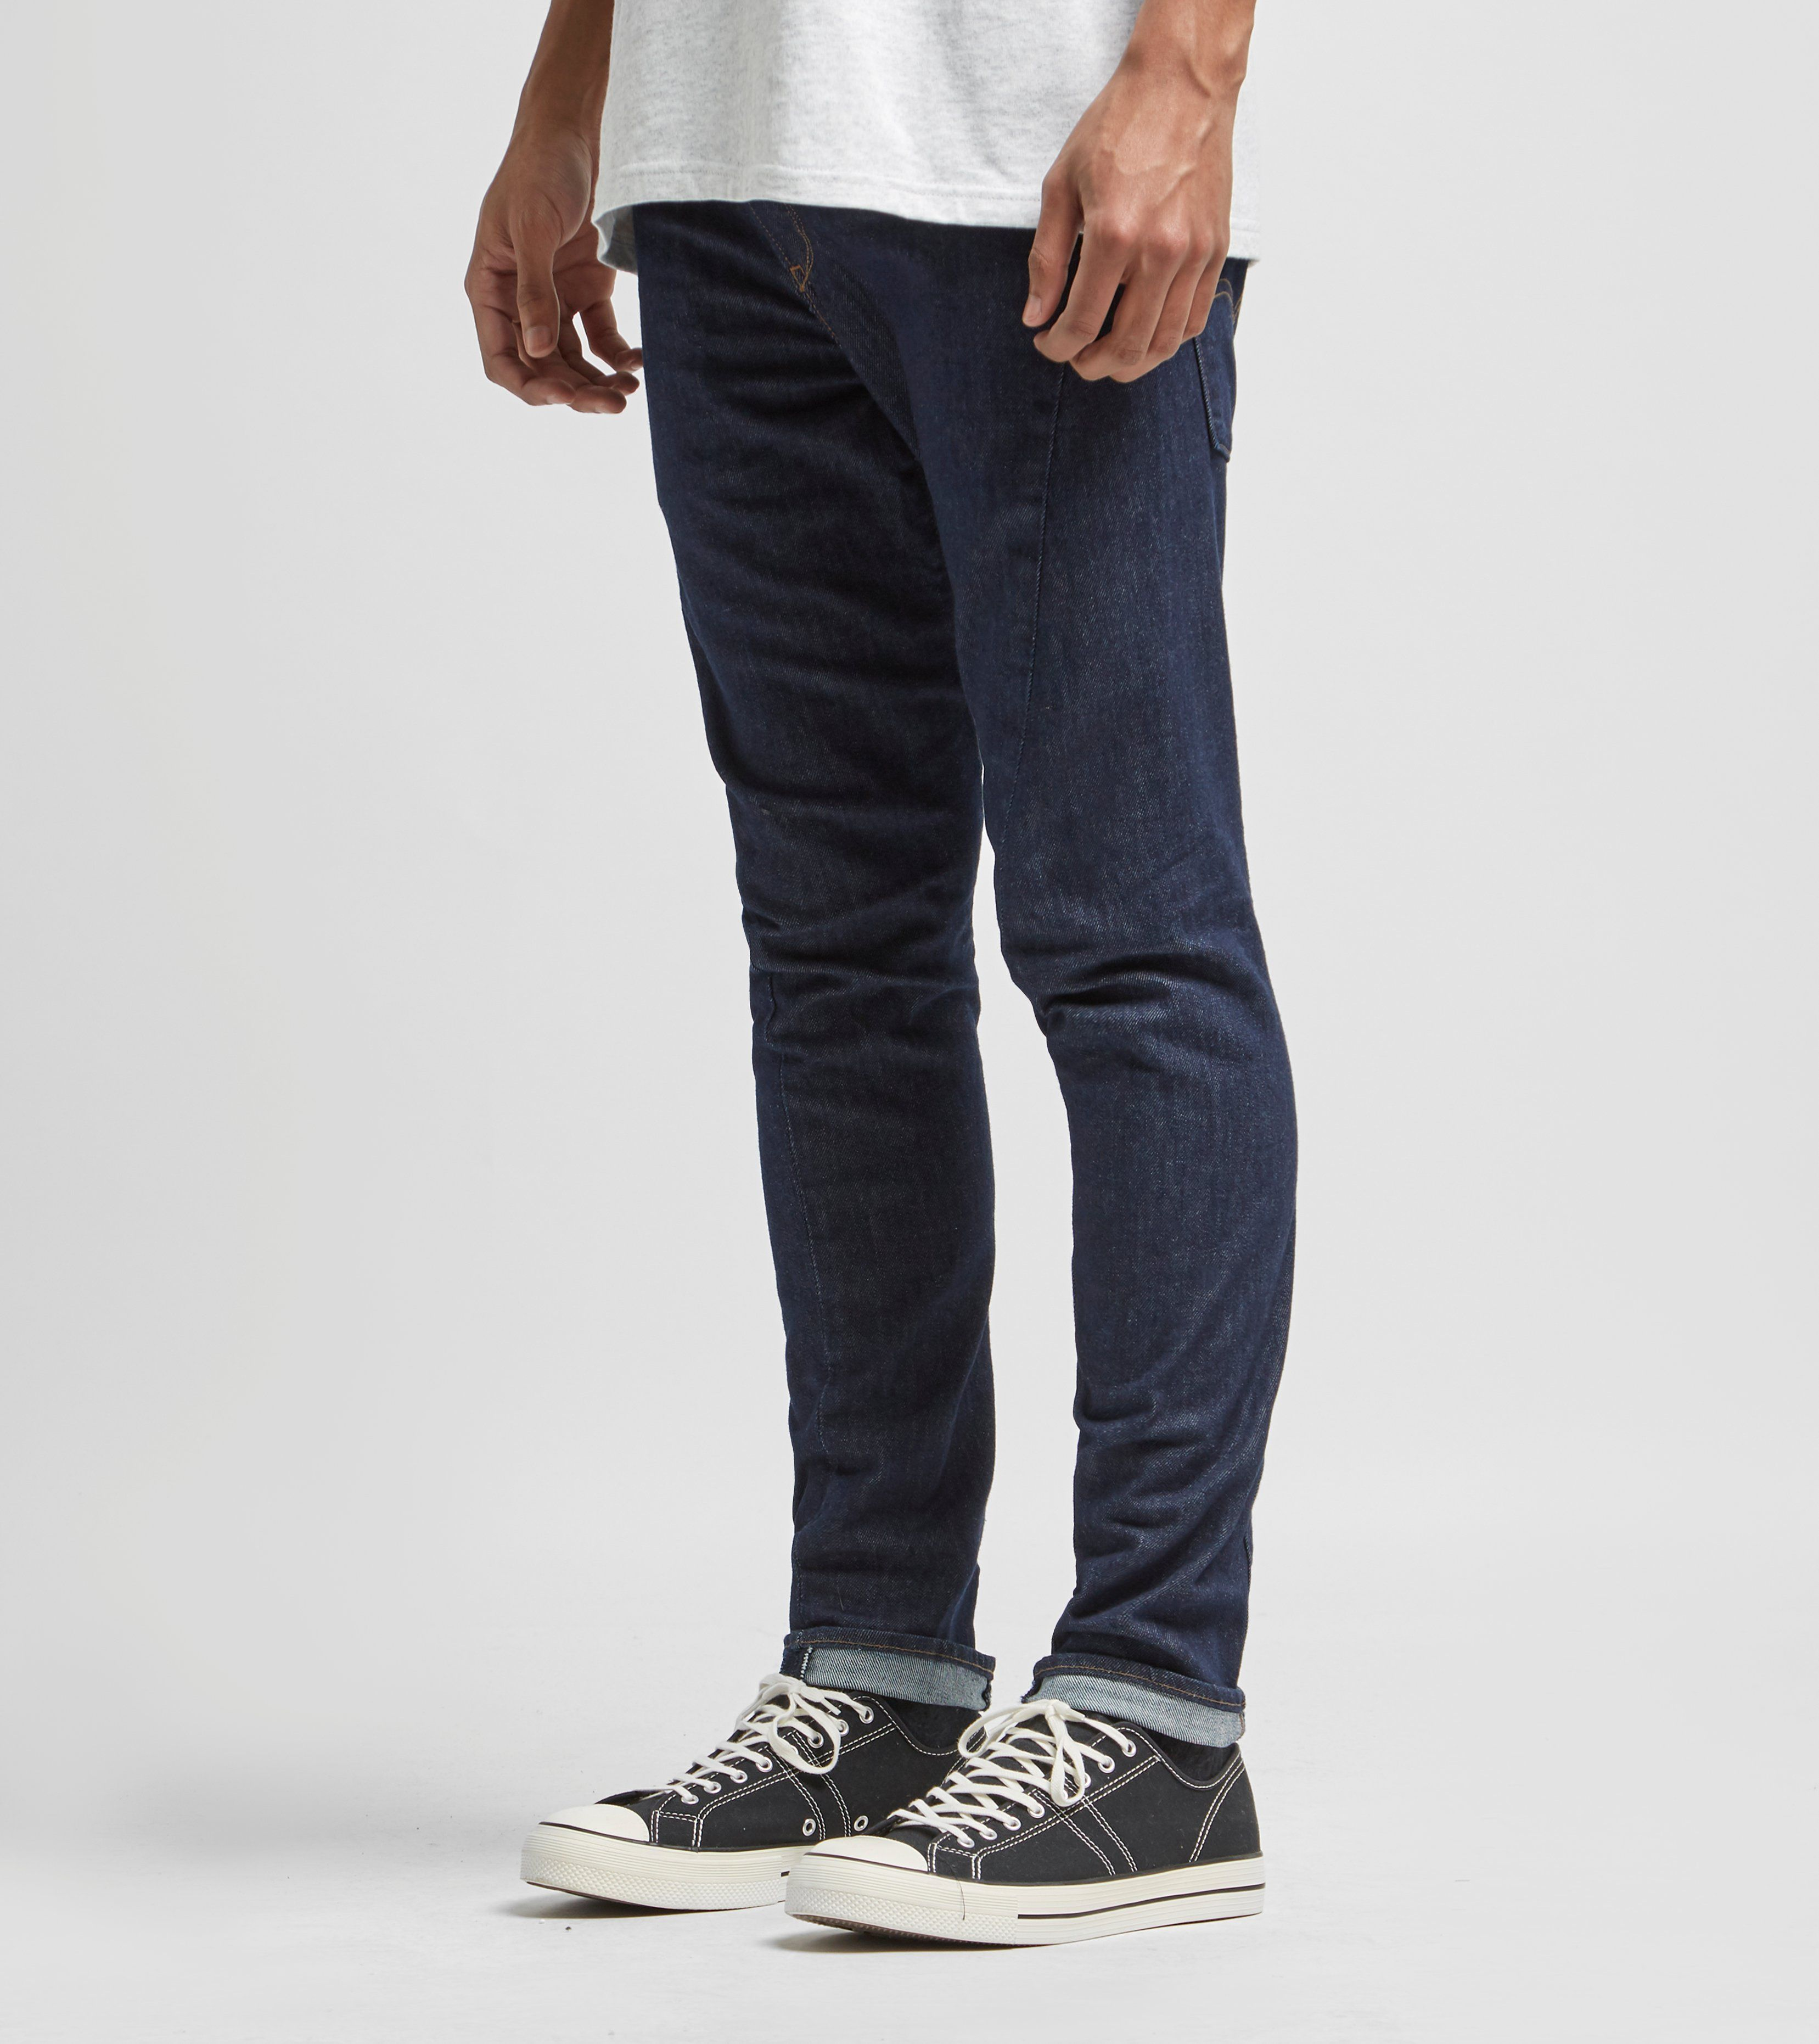 Levis Engineered Jeans Slim Fitting